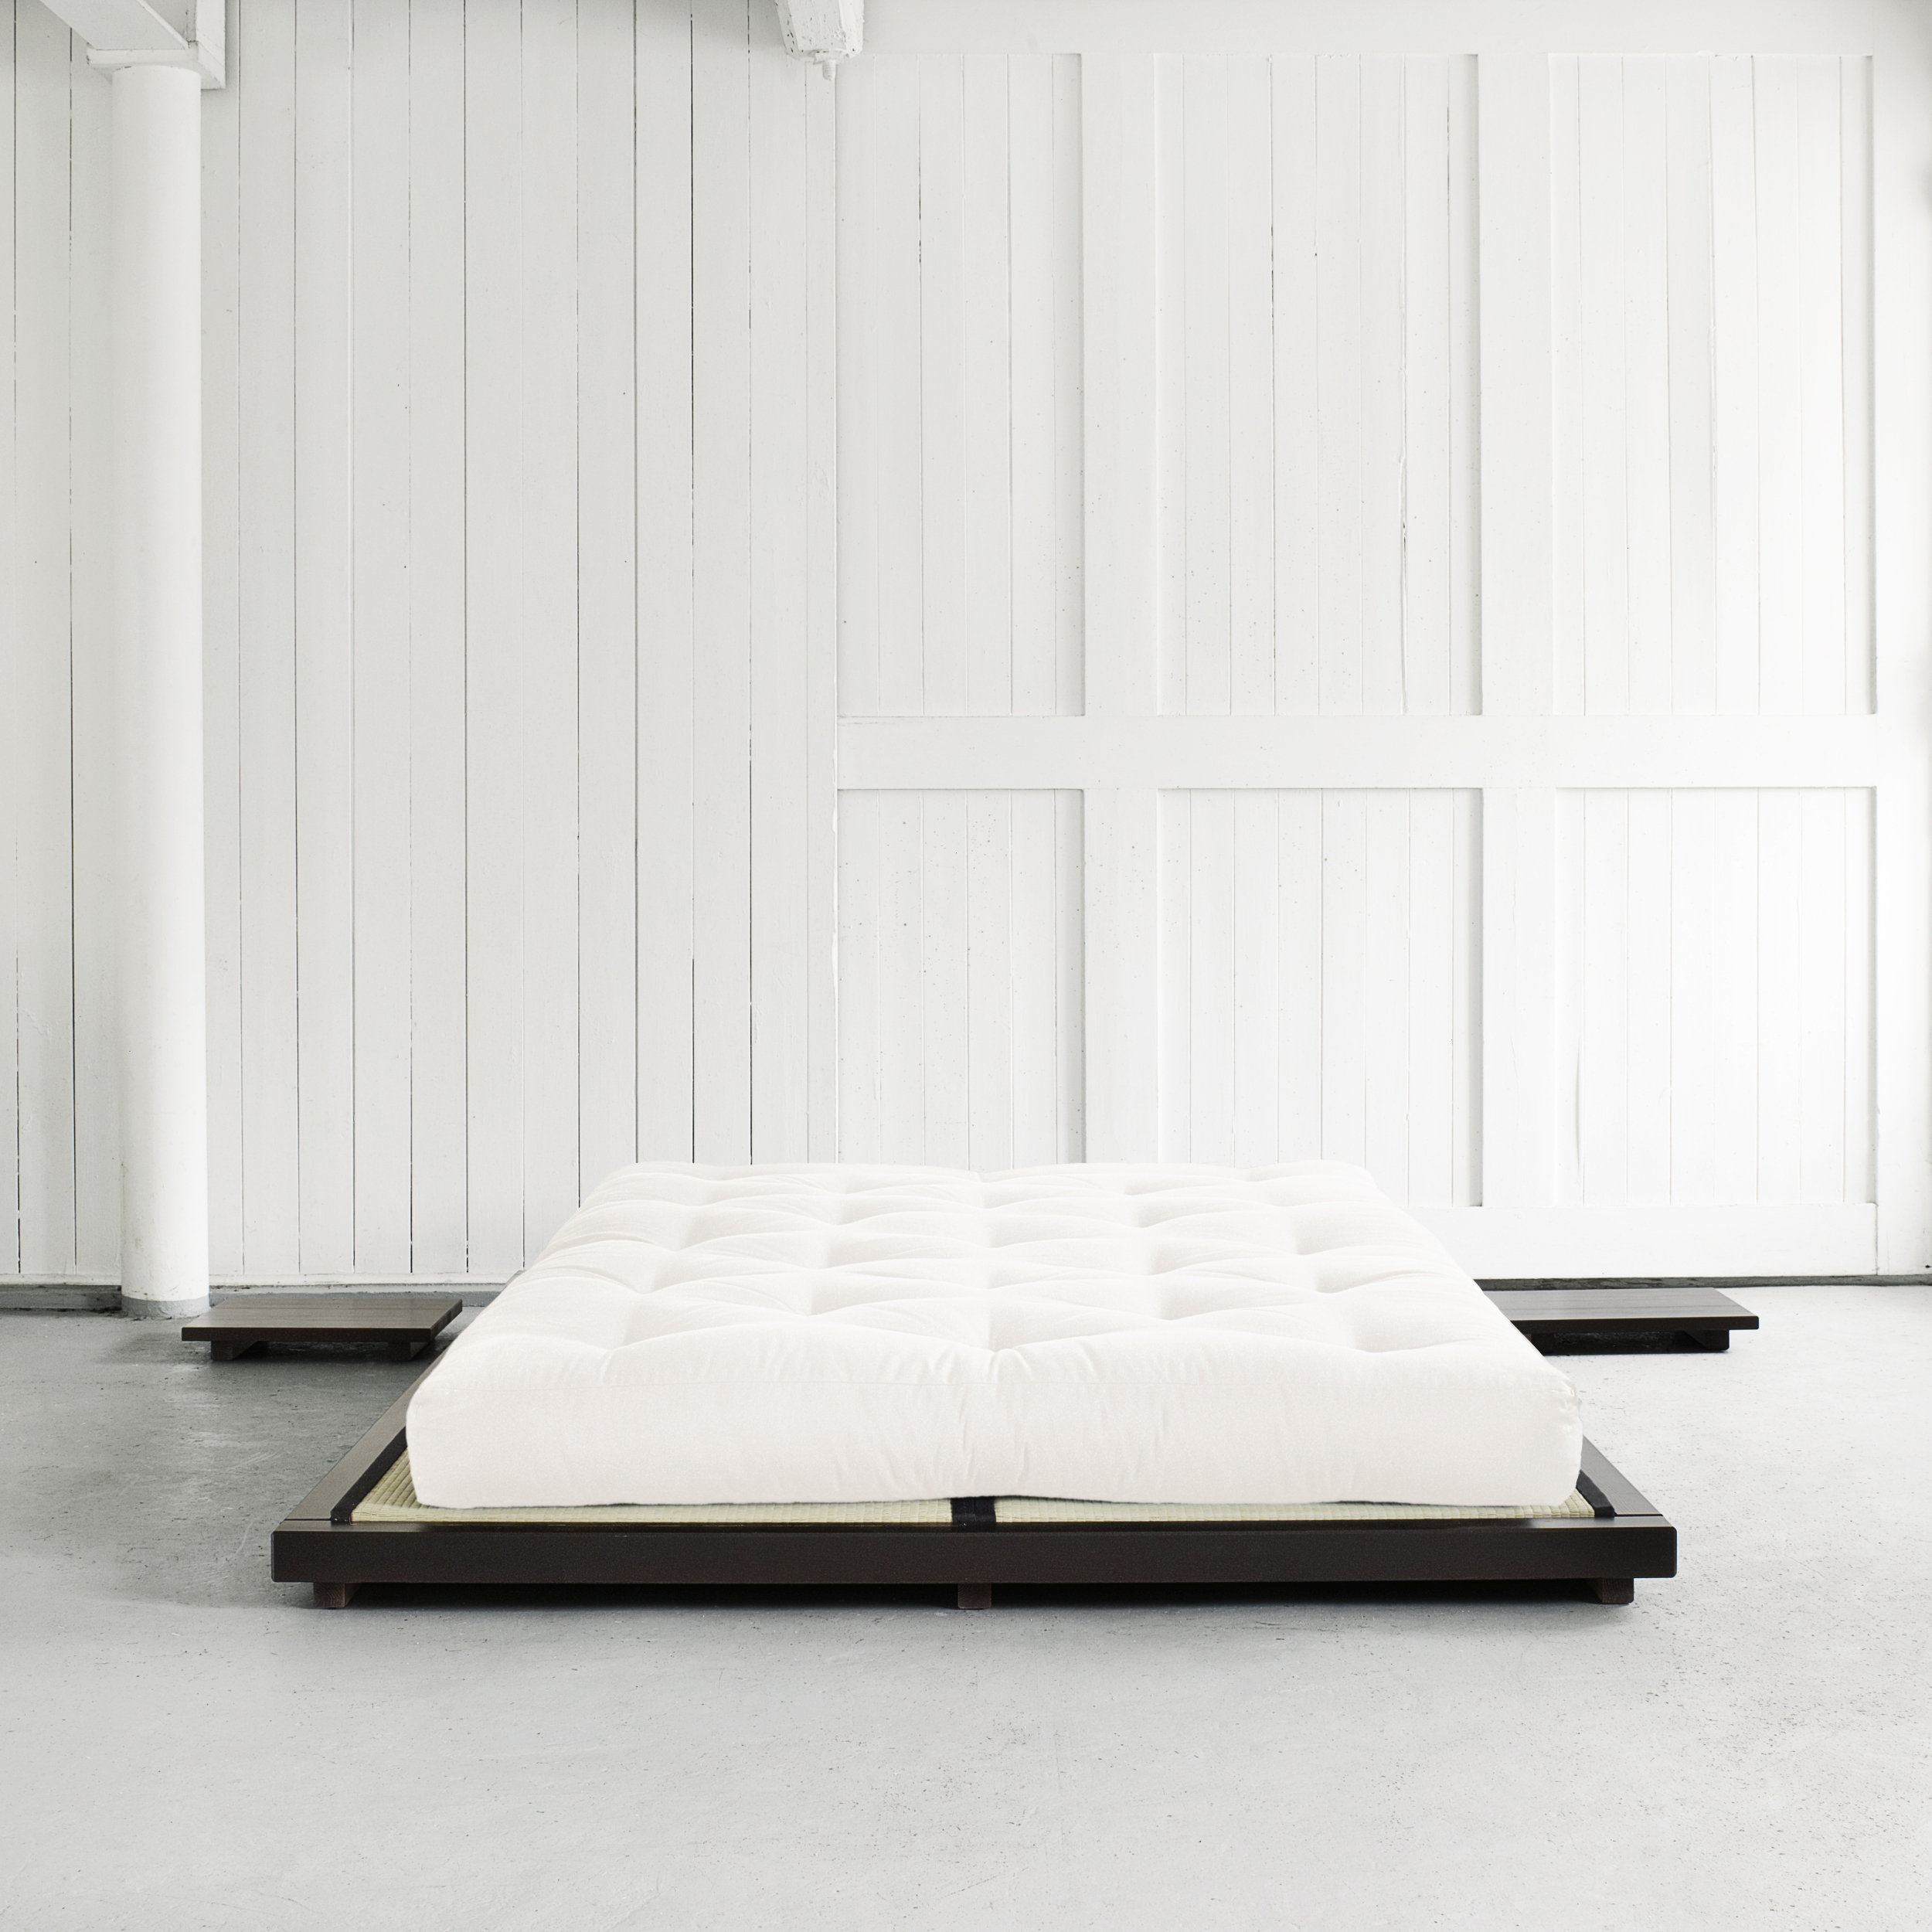 dock bed black